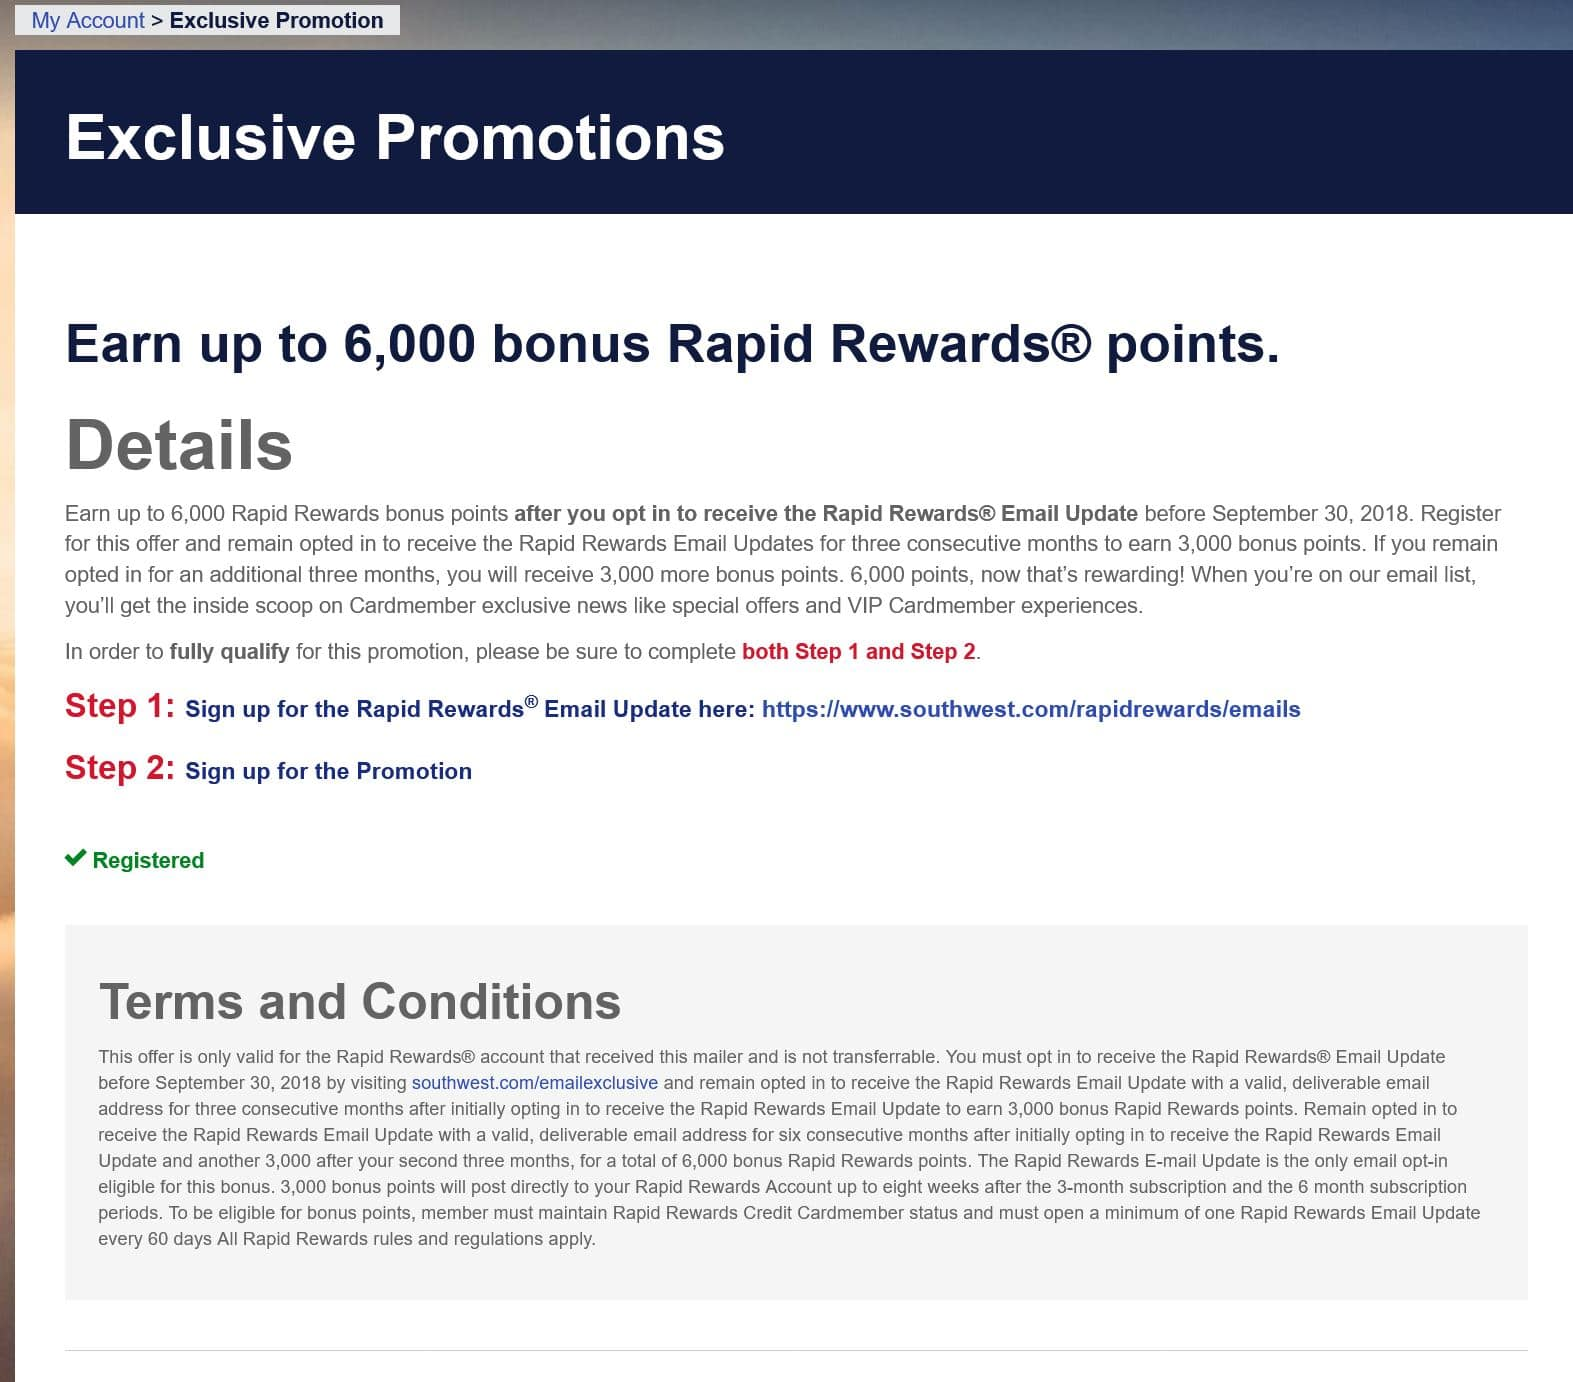 Southwest airlines free 6000 points for email signup - YMMV